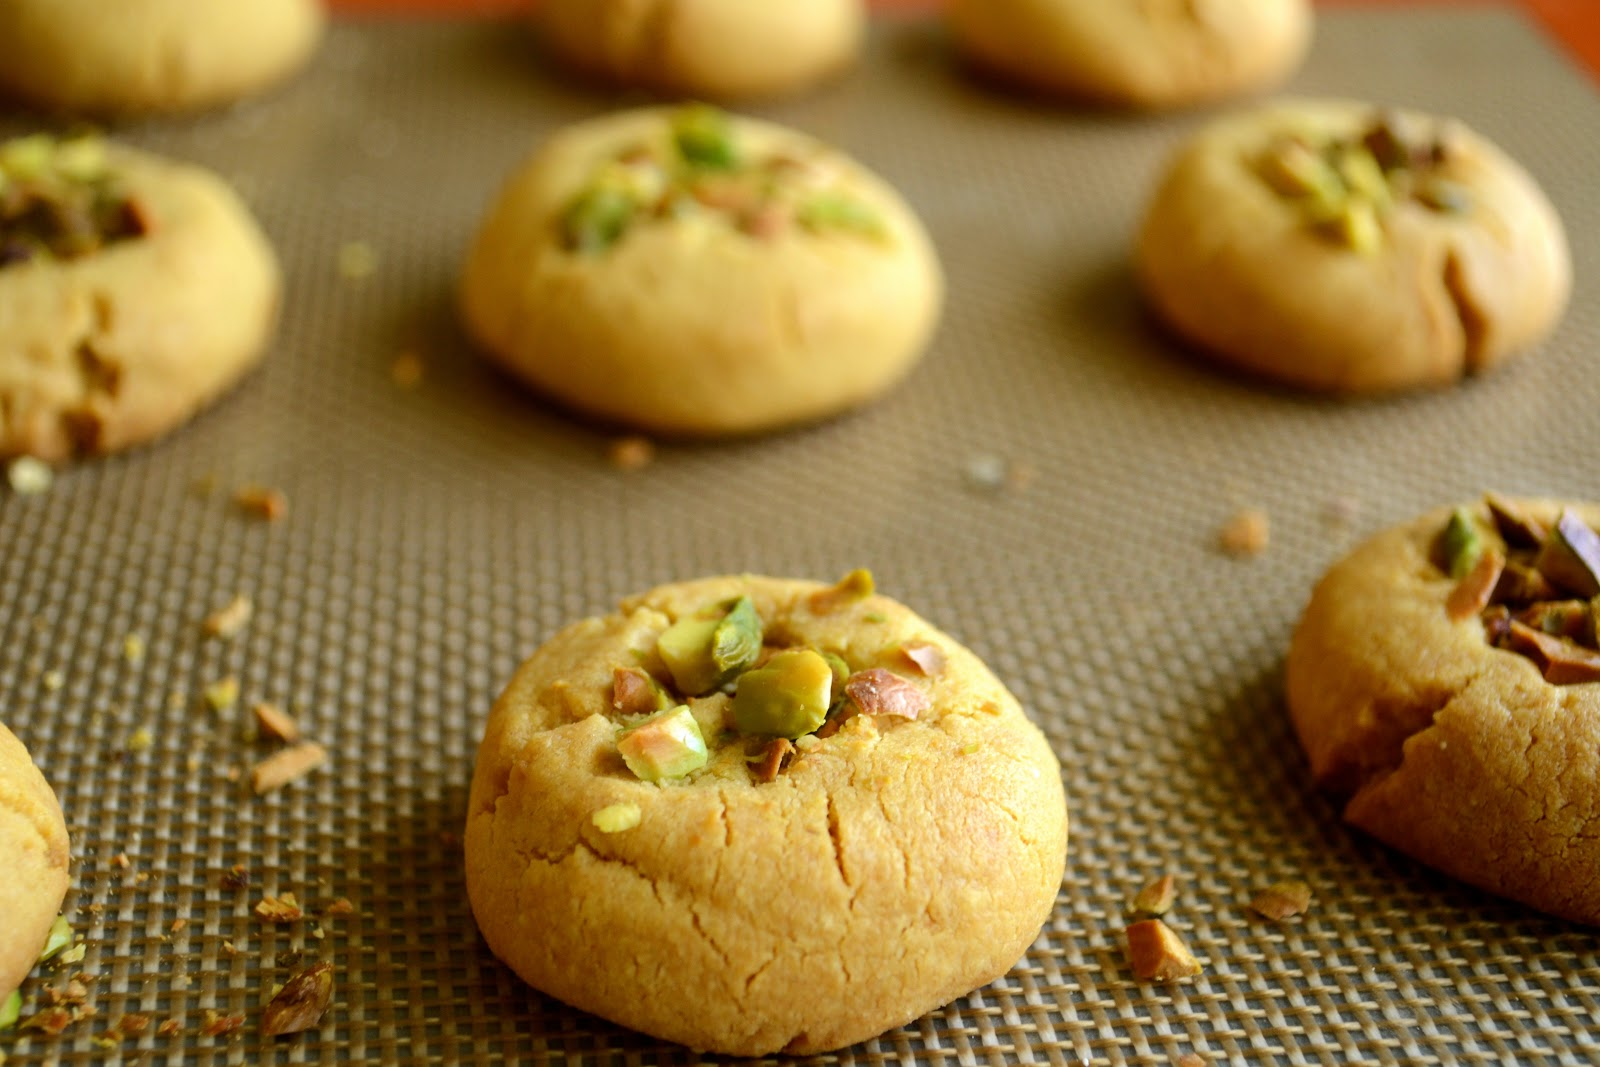 Lawyer Loves Lunch: Brown Butter Pistachio Cookies for Chai Time